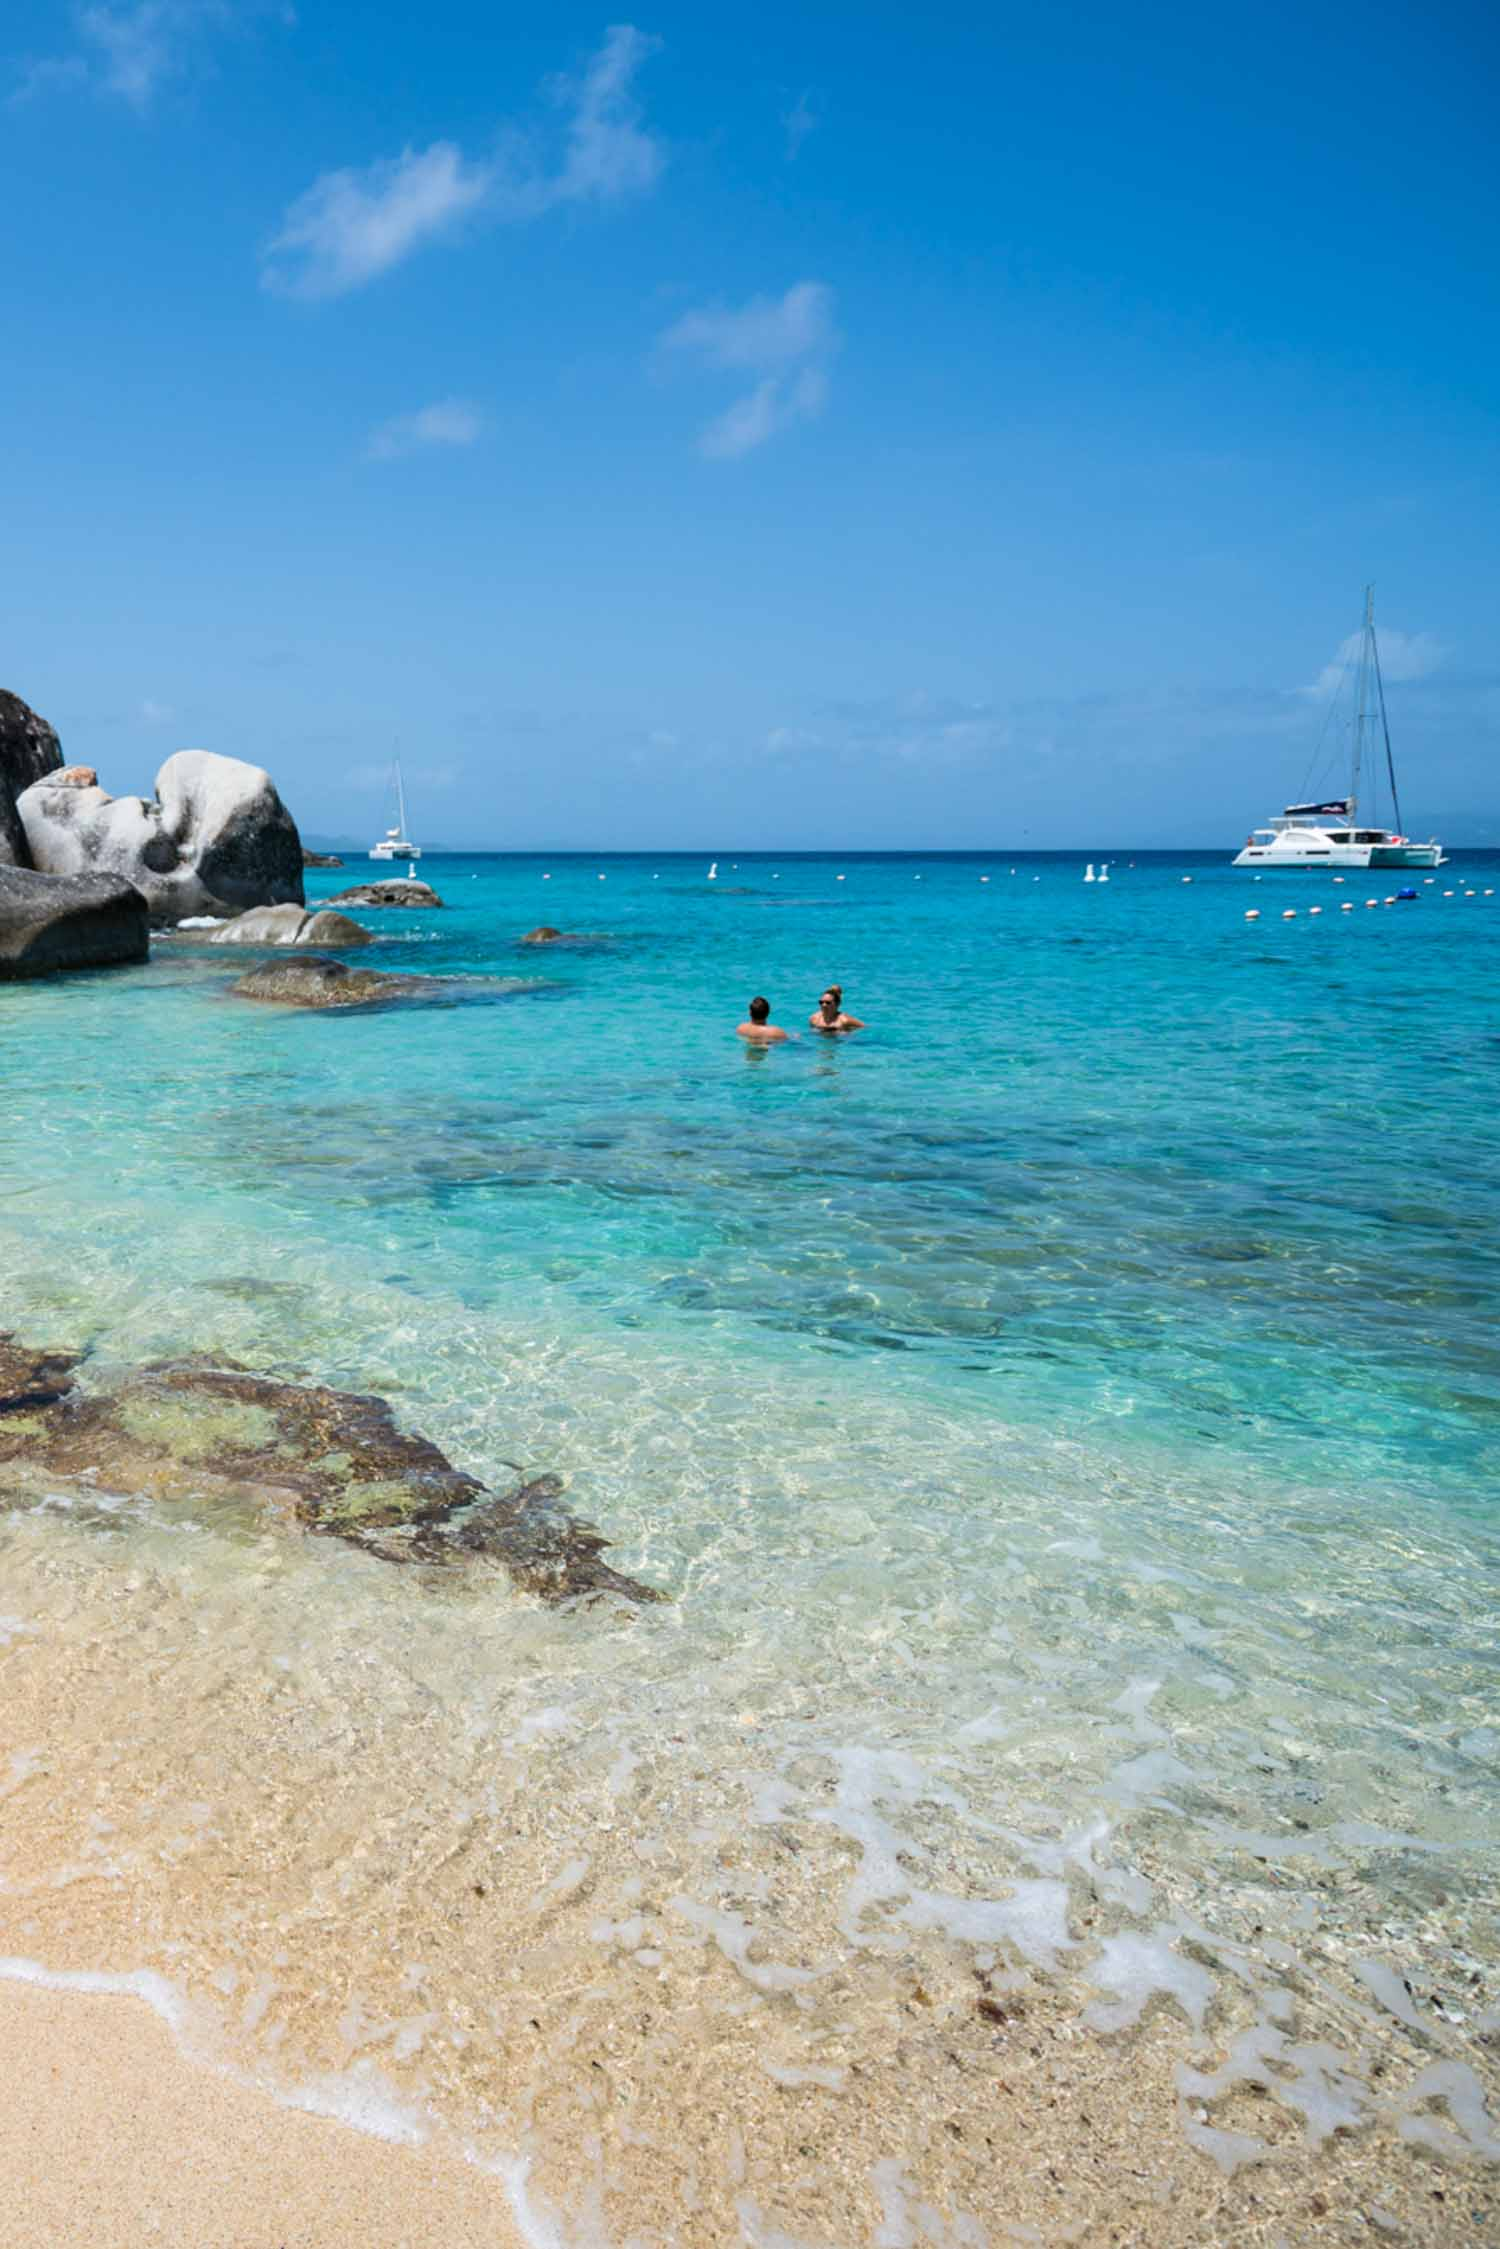 The British Virgin islands have some of the most beautiful beaches in the Caribbean